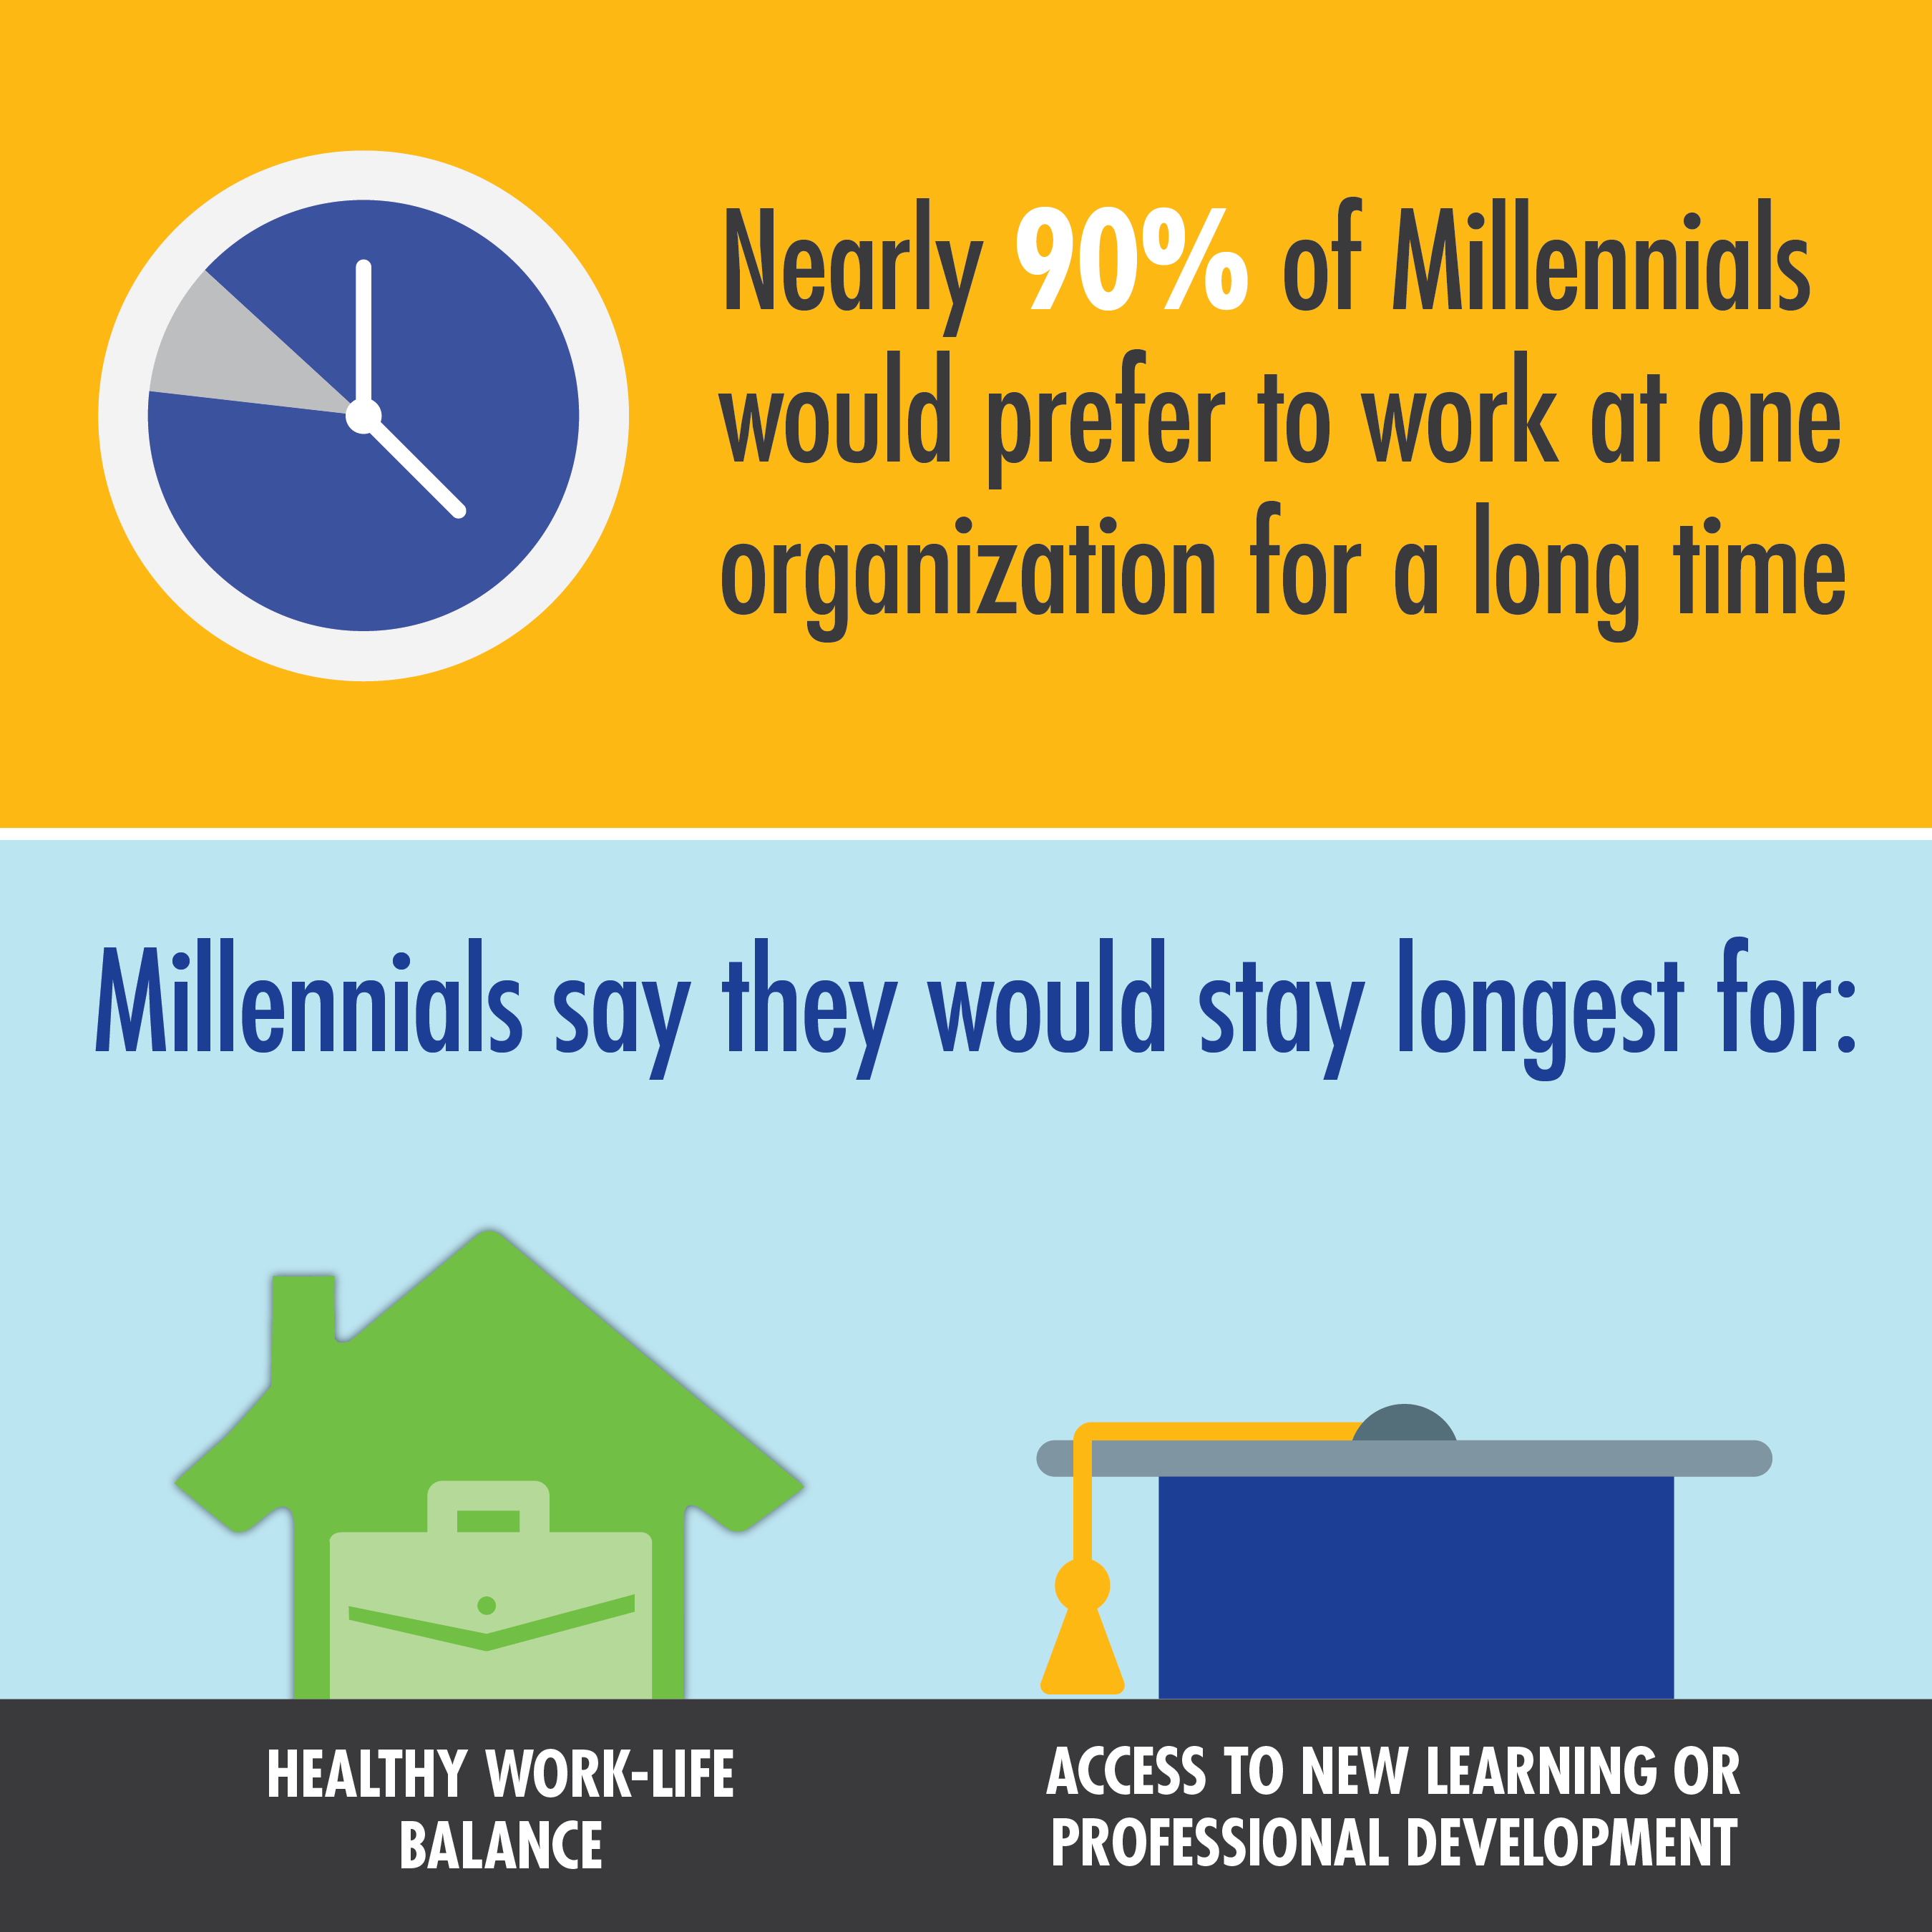 Millennials Looking for Work Life Balance & Professional Development